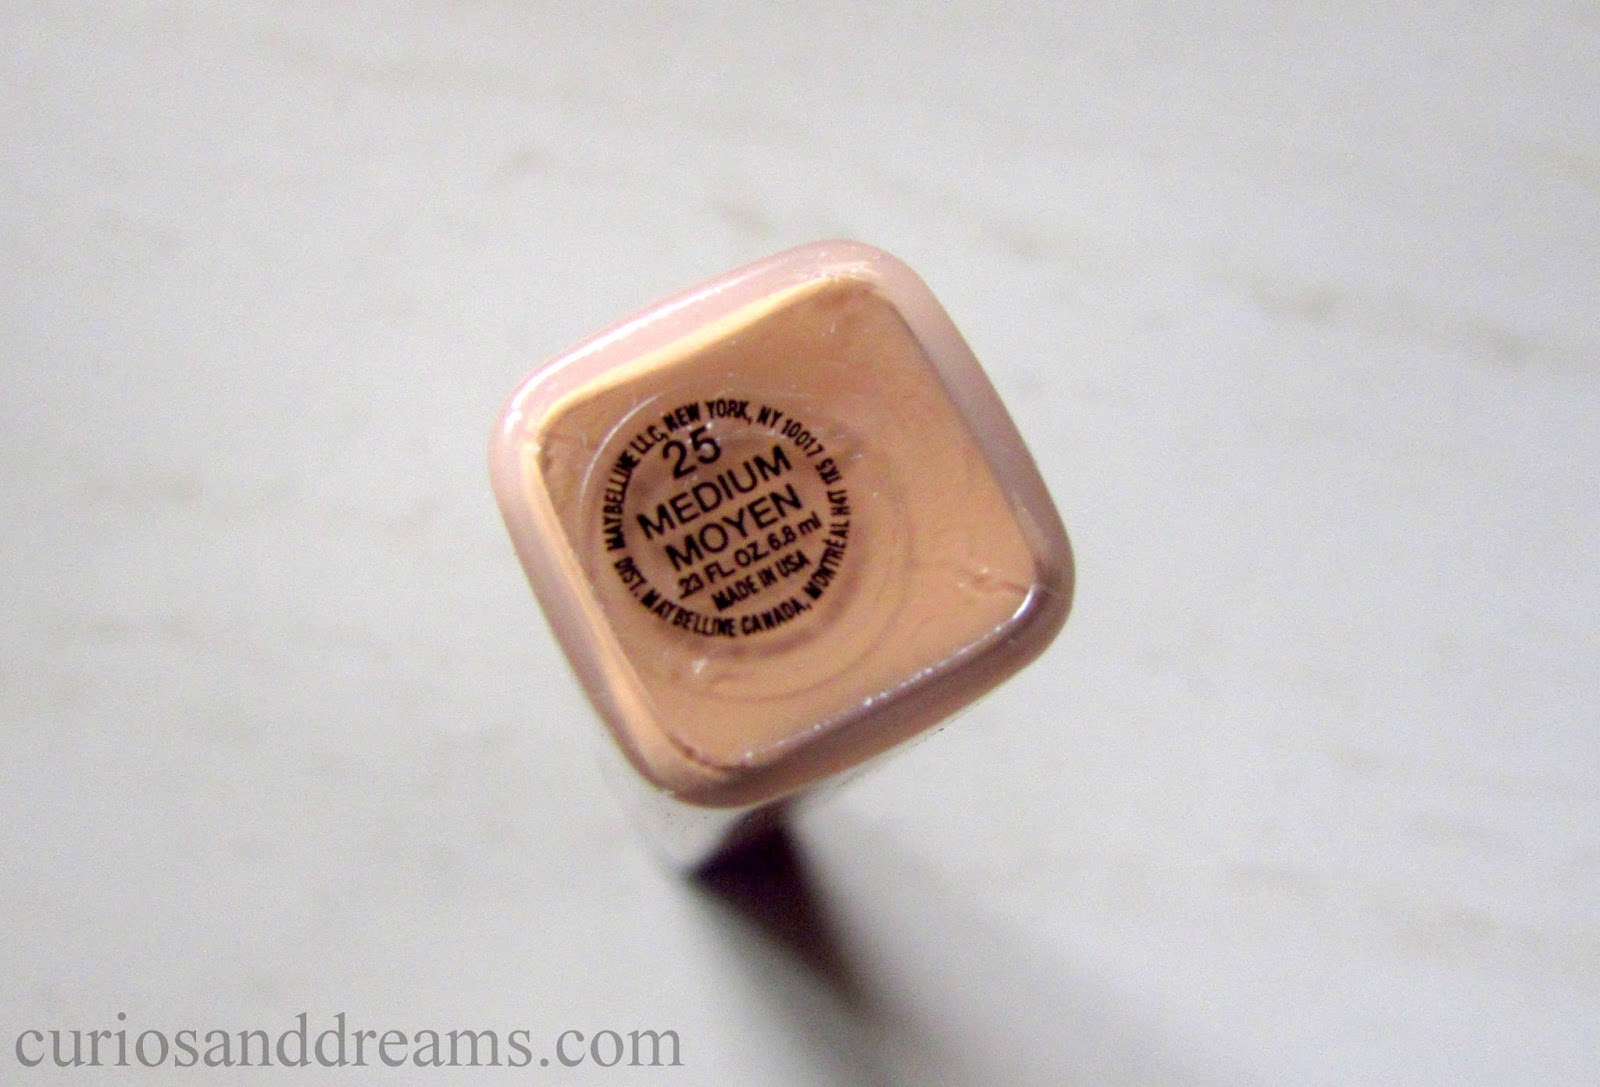 Curios And Dreams Makeup Beauty Product Reviews Maybelline Fit Me Concealer Review